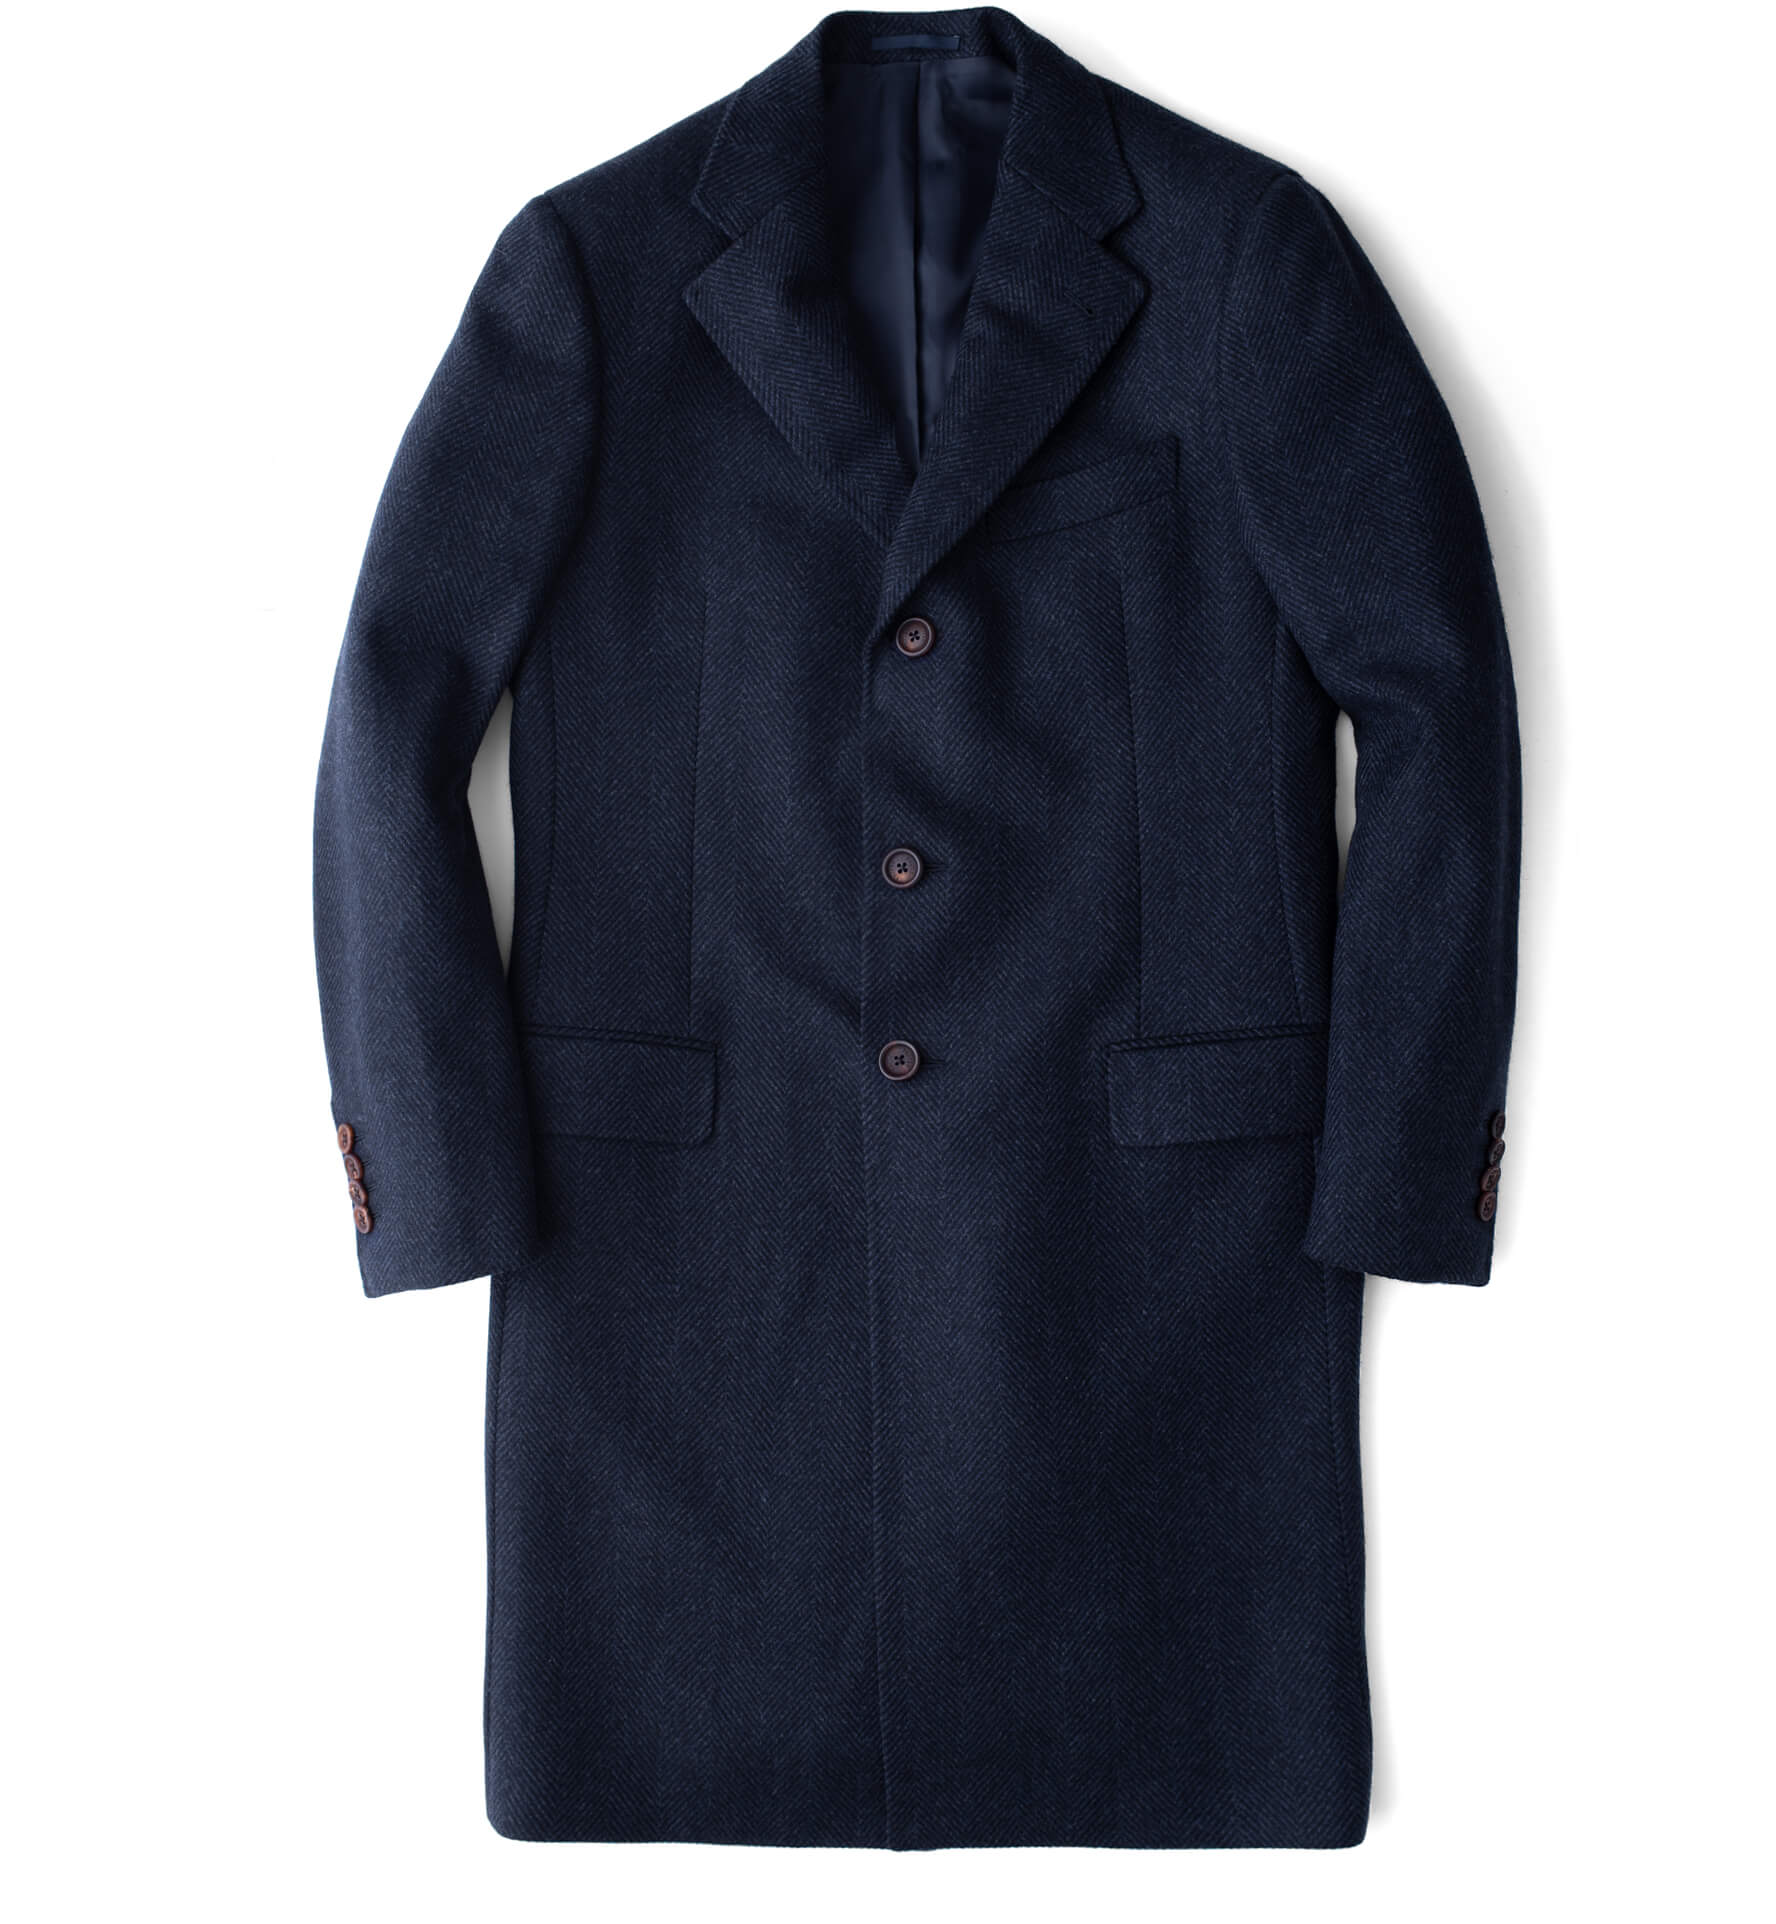 Zoom Image of Bleecker Navy Herringbone Wool and Cashmere Coat